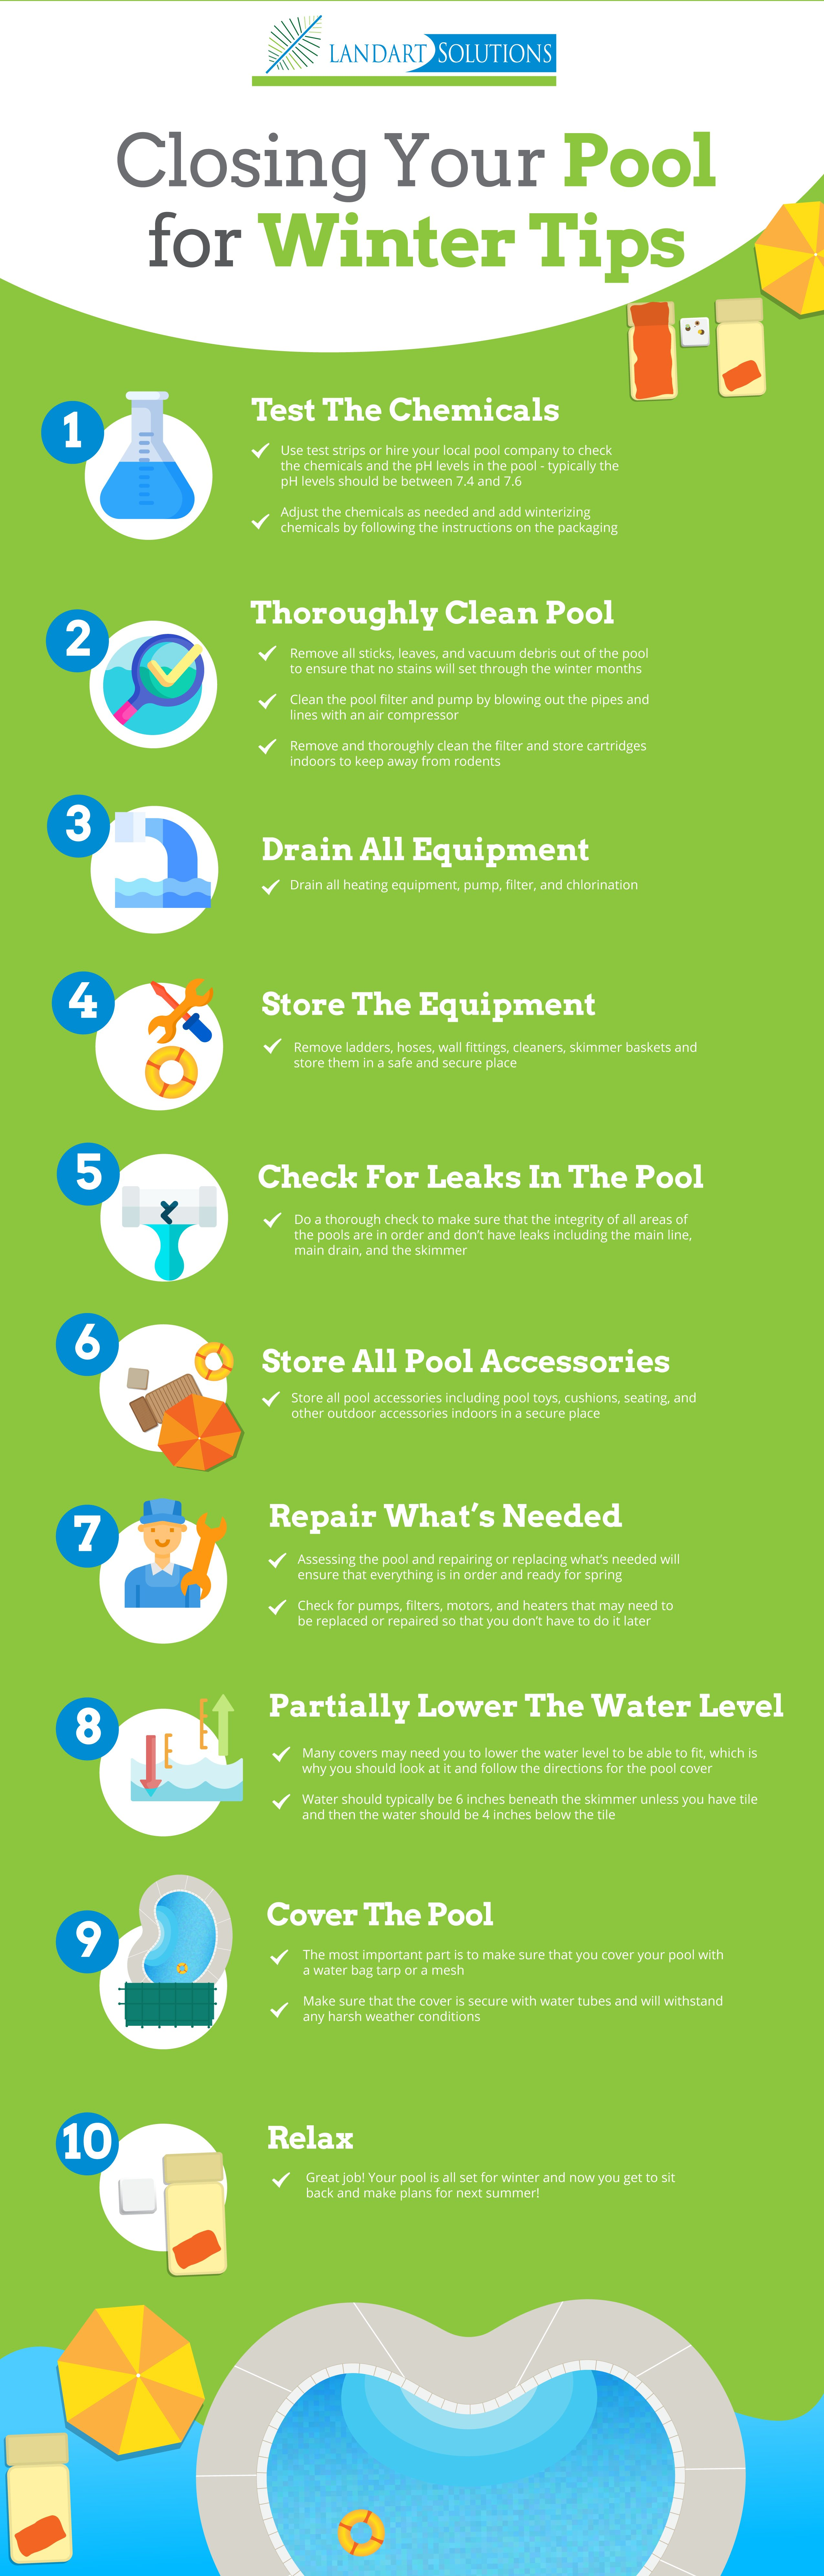 Tips for closing your pool for winter